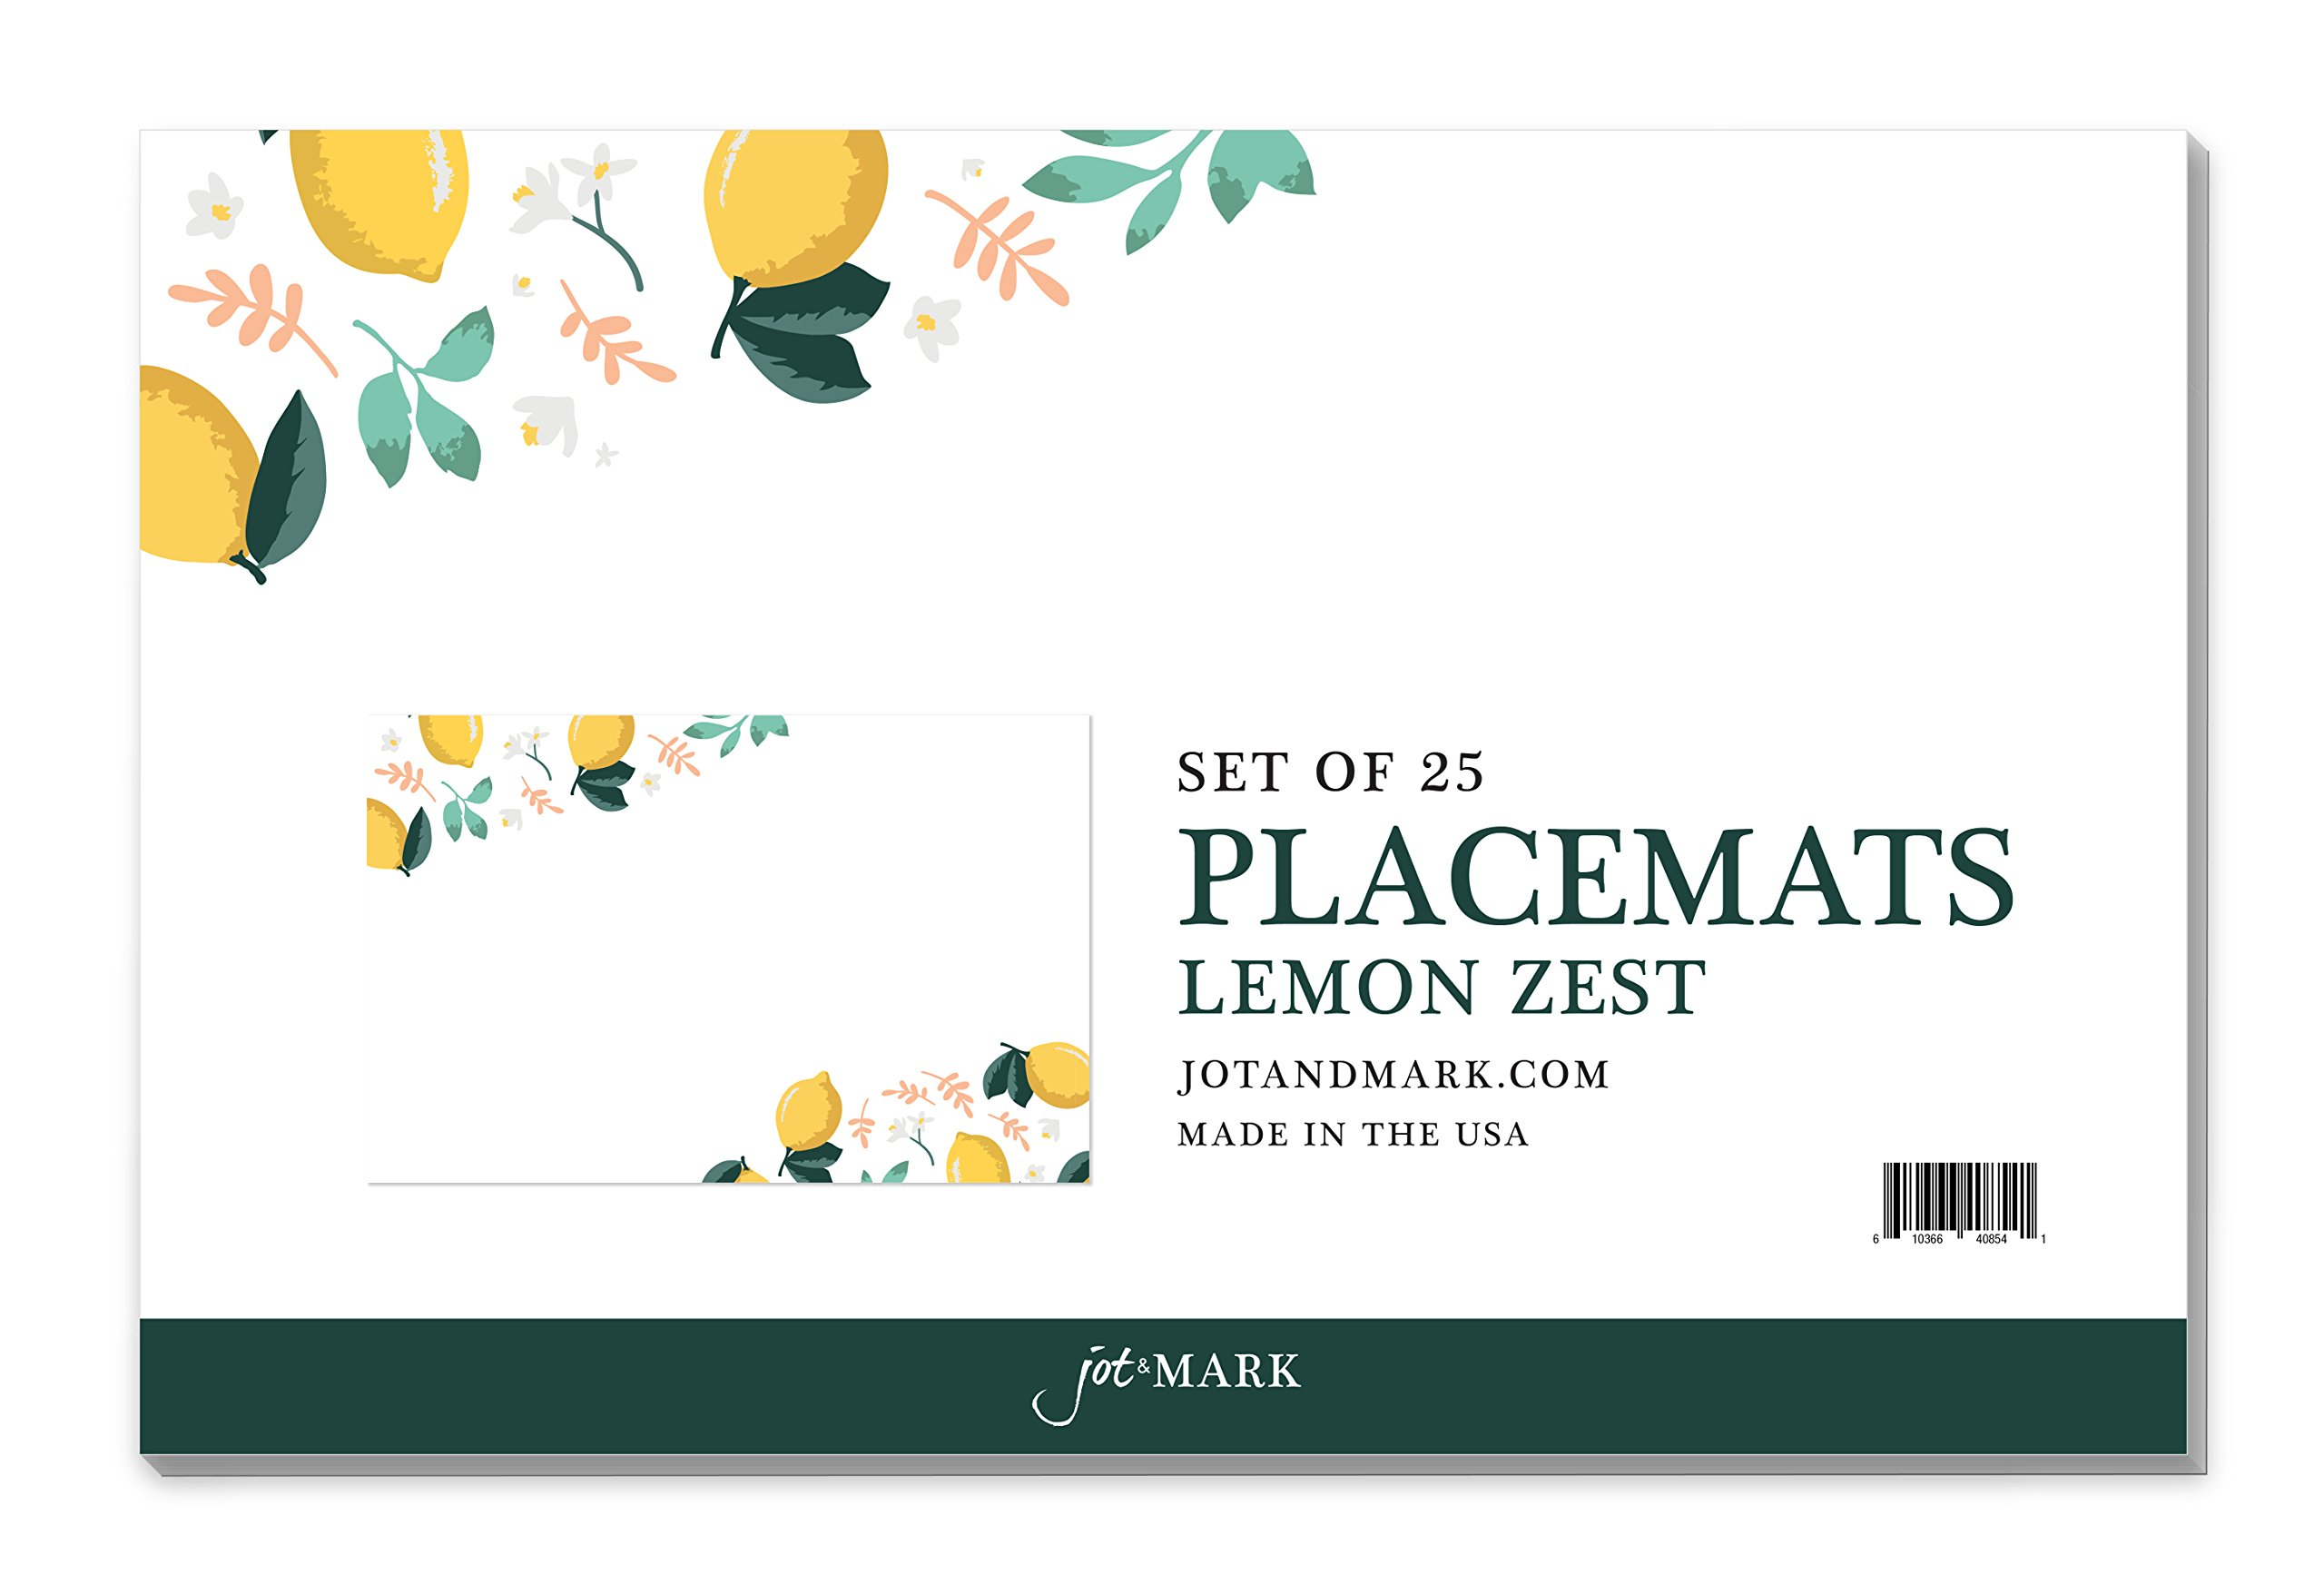 Jot & Mark Paper Place Mats Disposable Use for Dinner Parties, Banquets, Wedding Receptions, and Everyday Home Decor, Set of 25 (Lemon Zest)